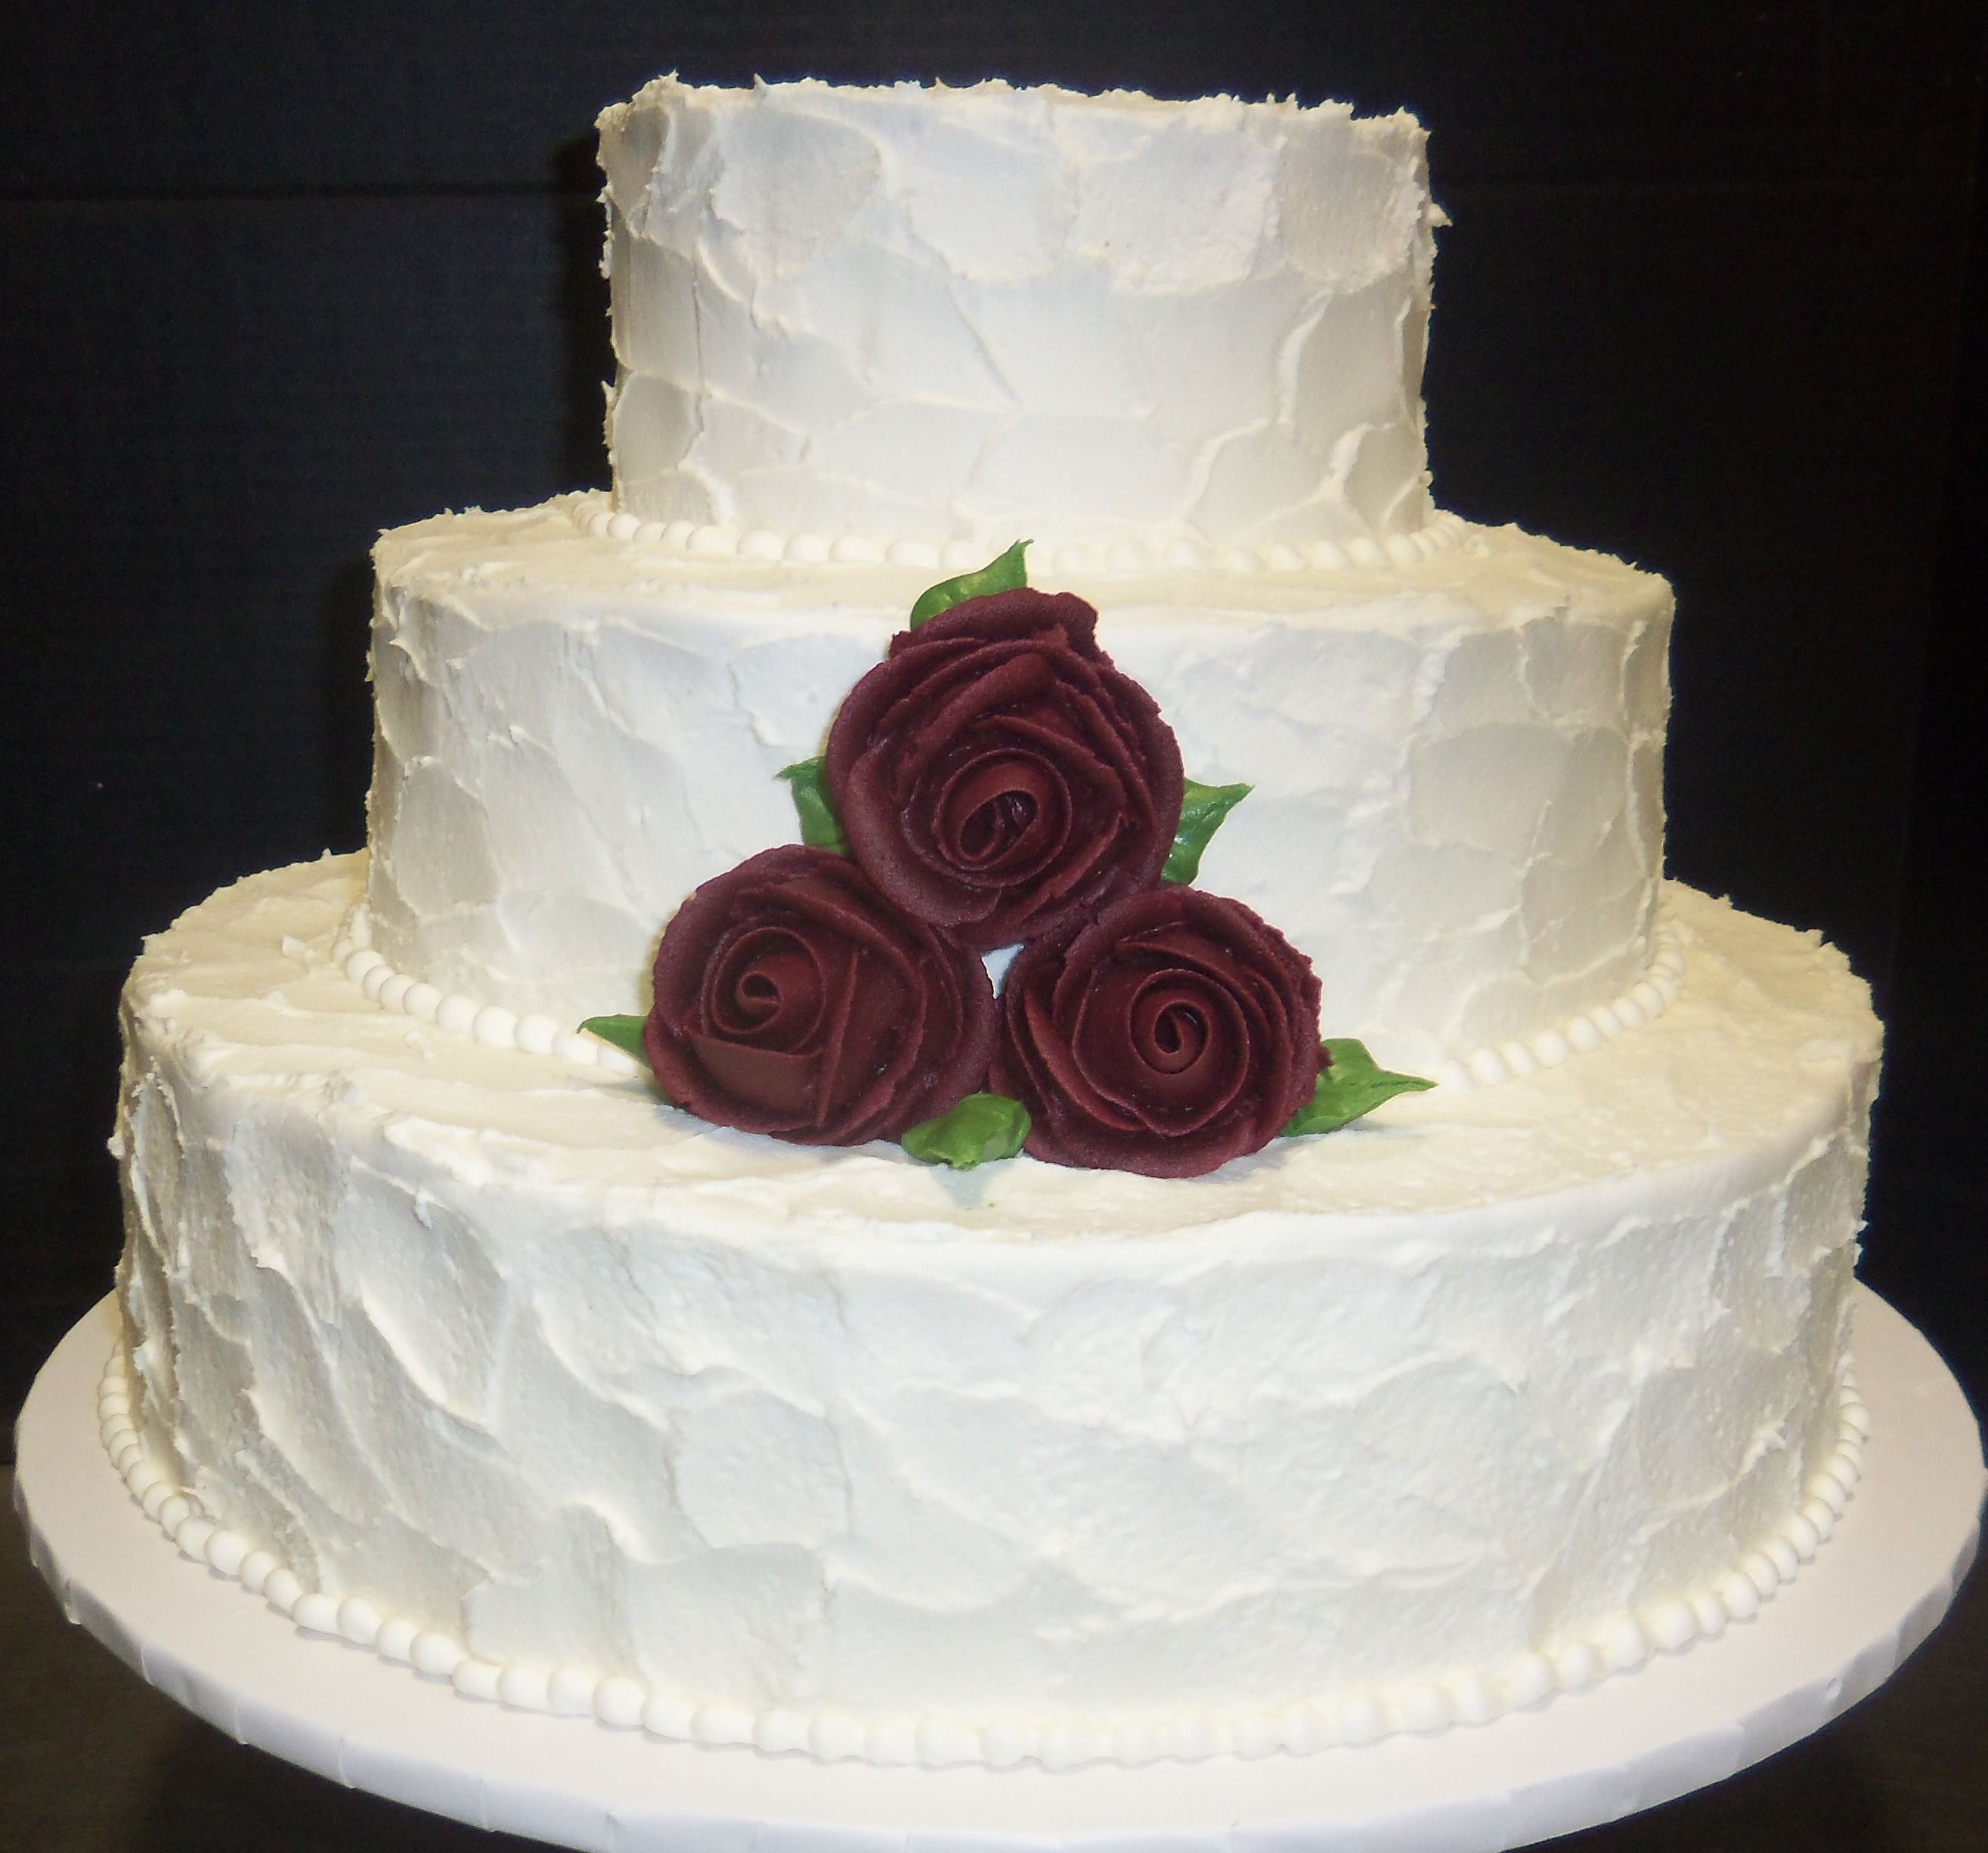 Deep red roses are featured on our white buttercream iced cake ...